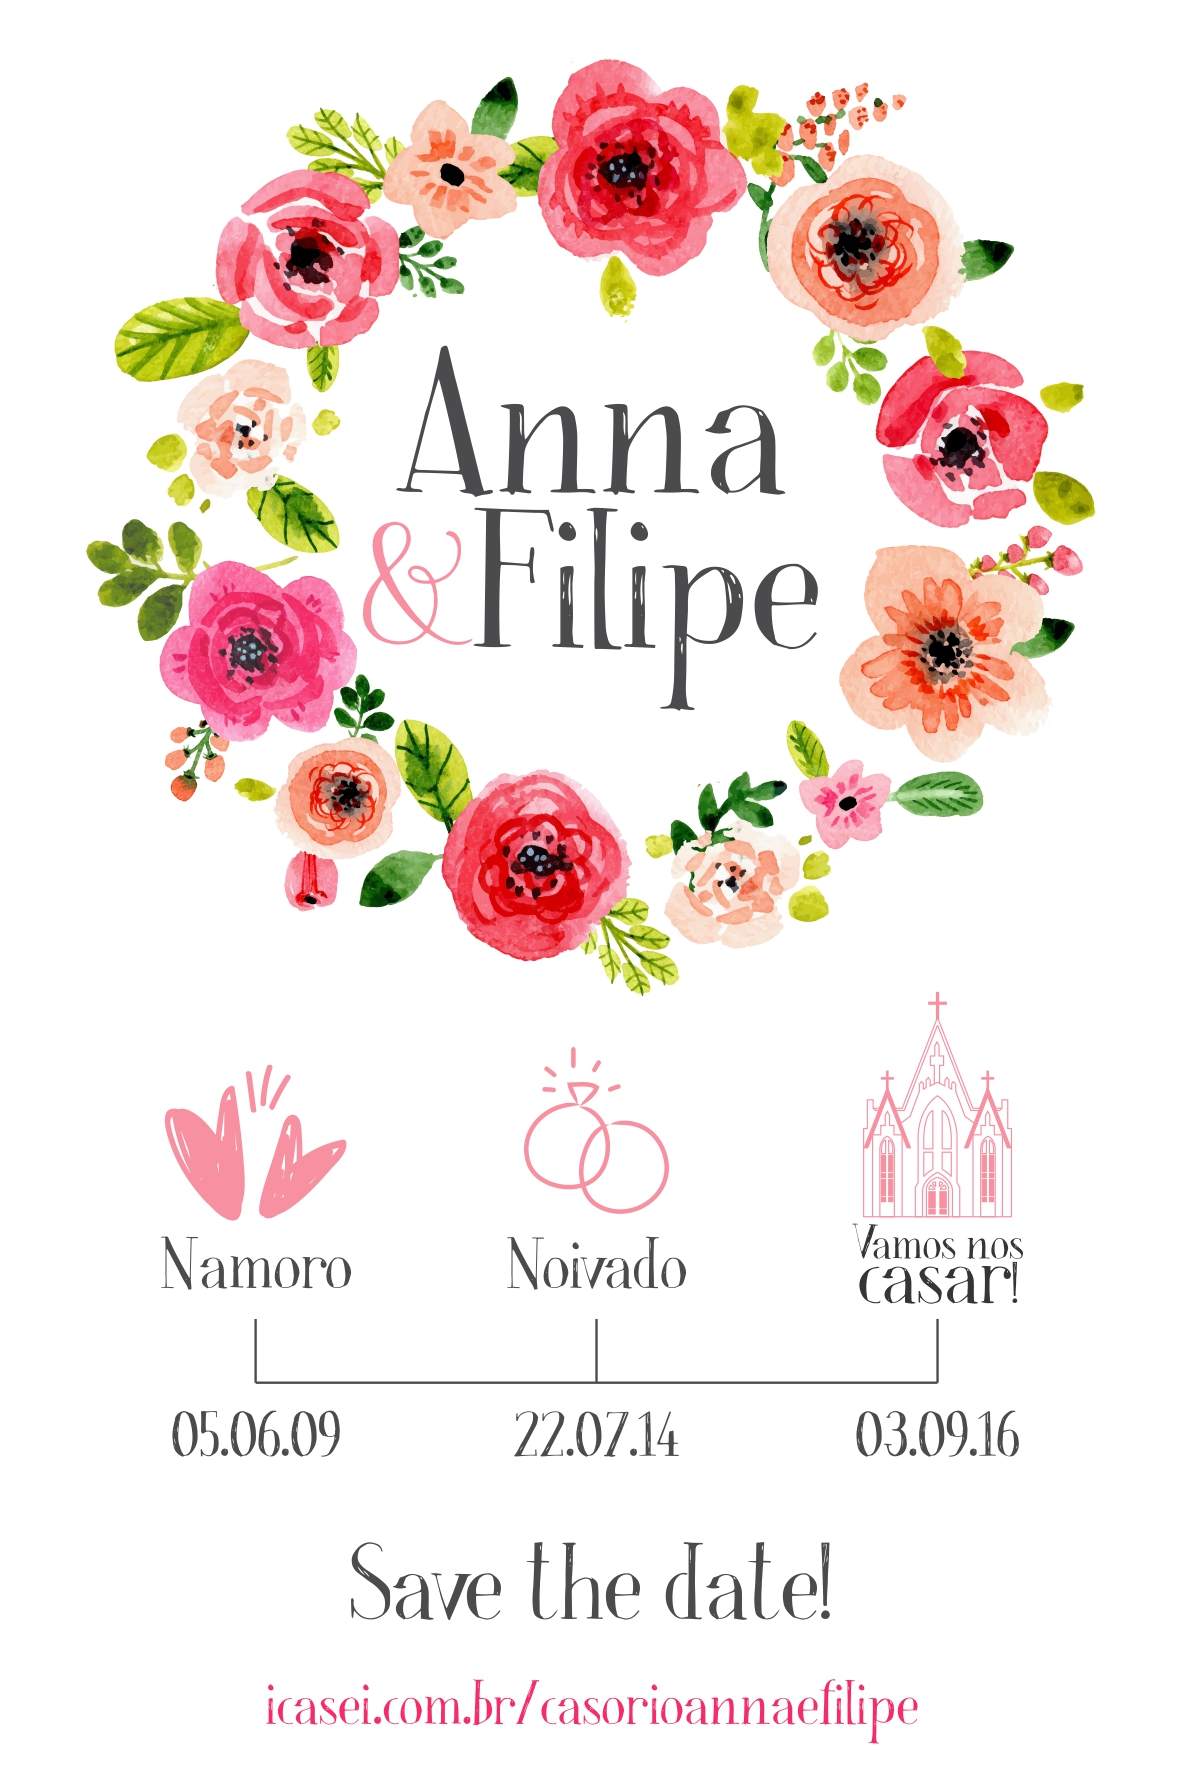 Anna&Filipe_save the date_2-2.jpg